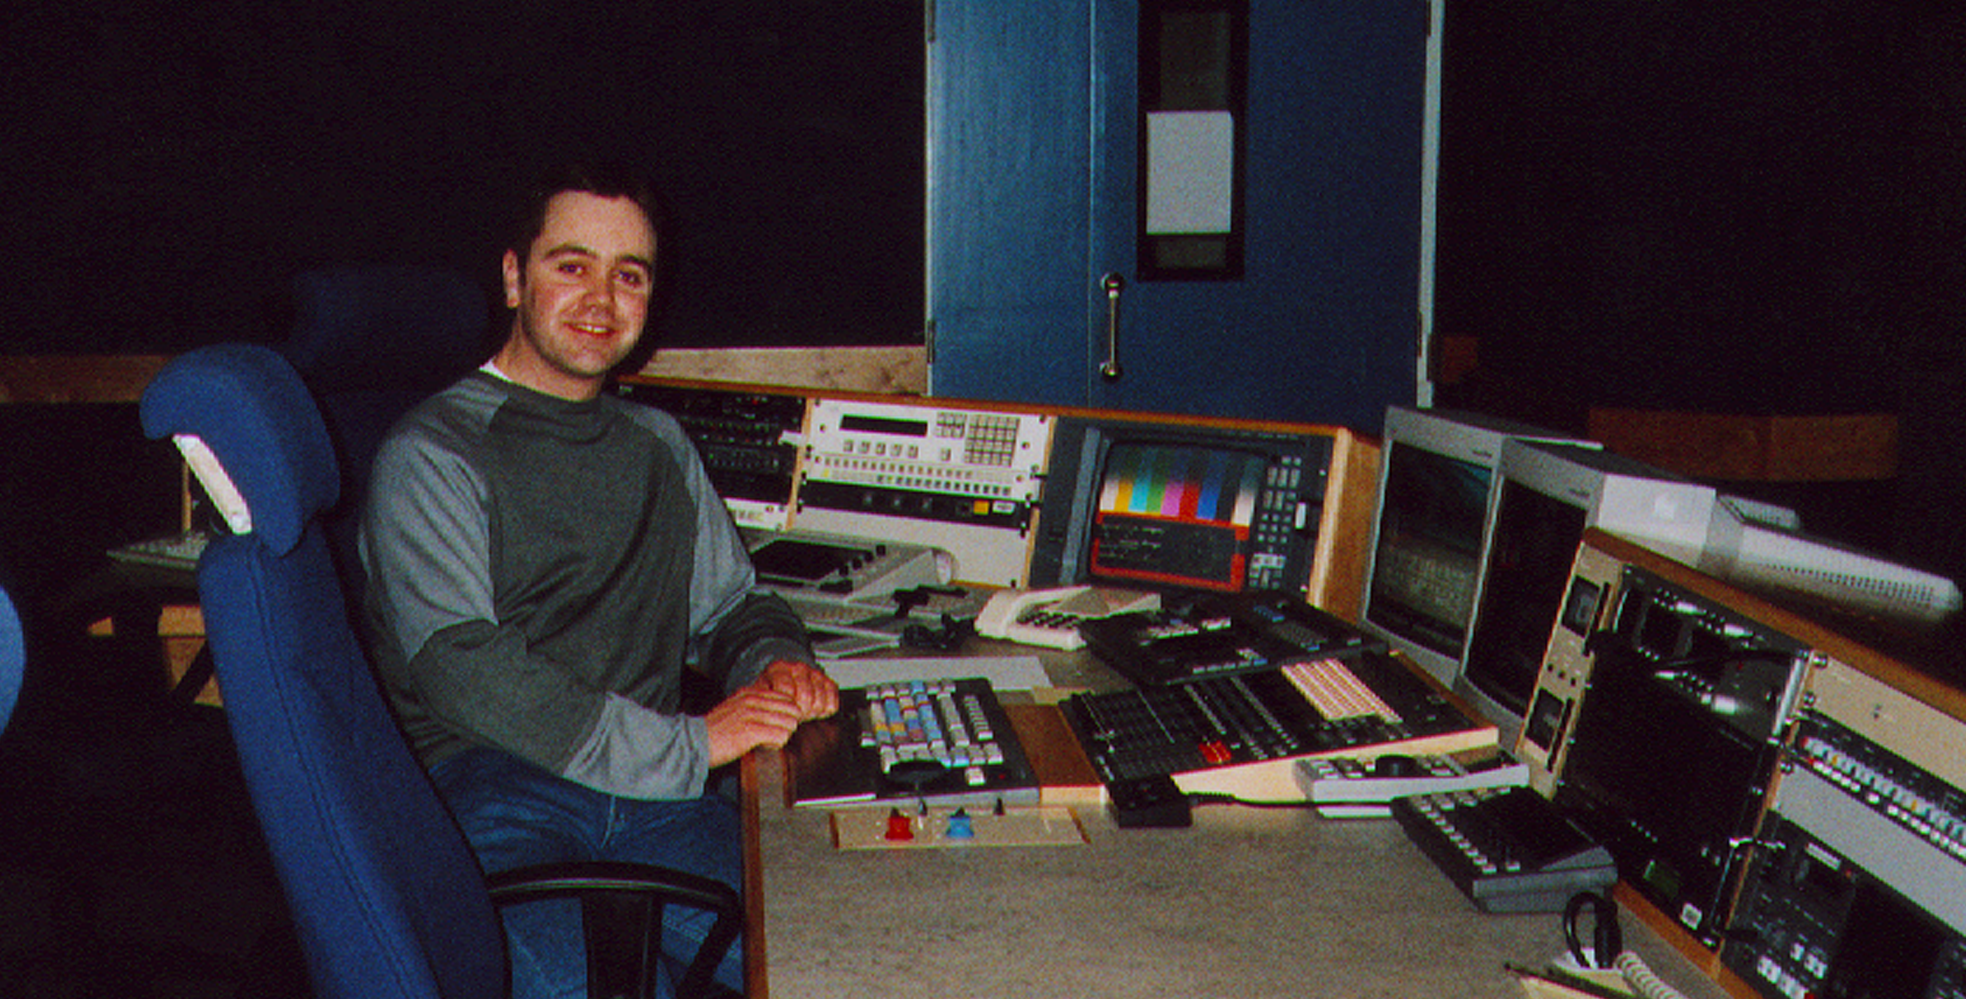 Proof that long ago, Mark was a vt editor. -